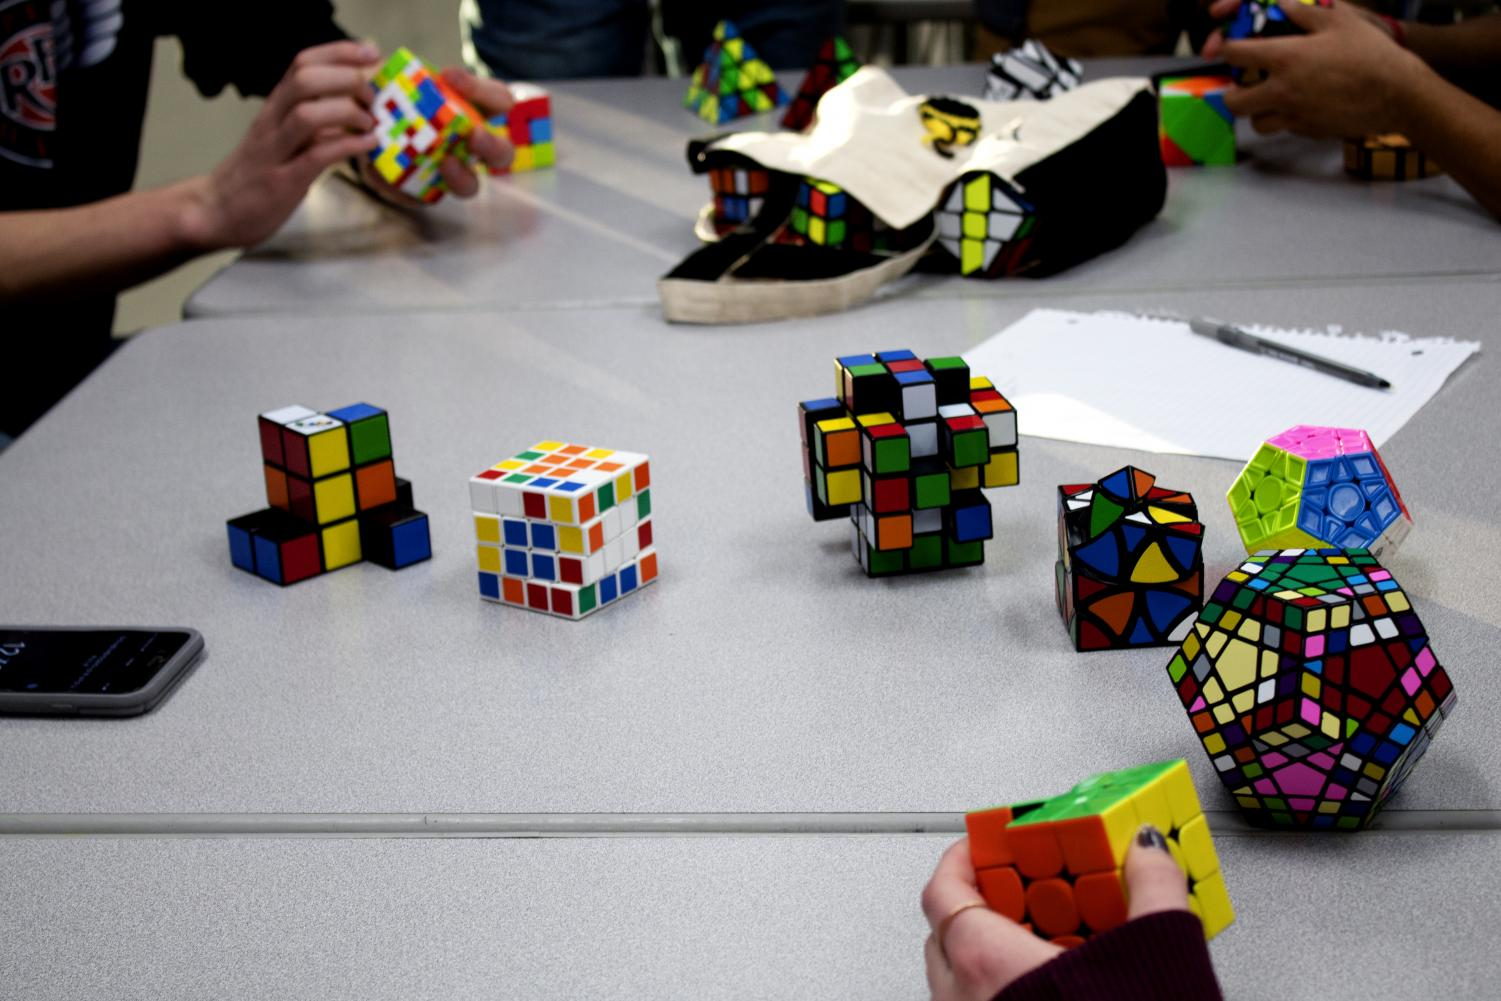 Members of Cubing Cats bring their own Rubik's Cube collections to every meeting to share their cubes with people and experience solving different types of cubes.